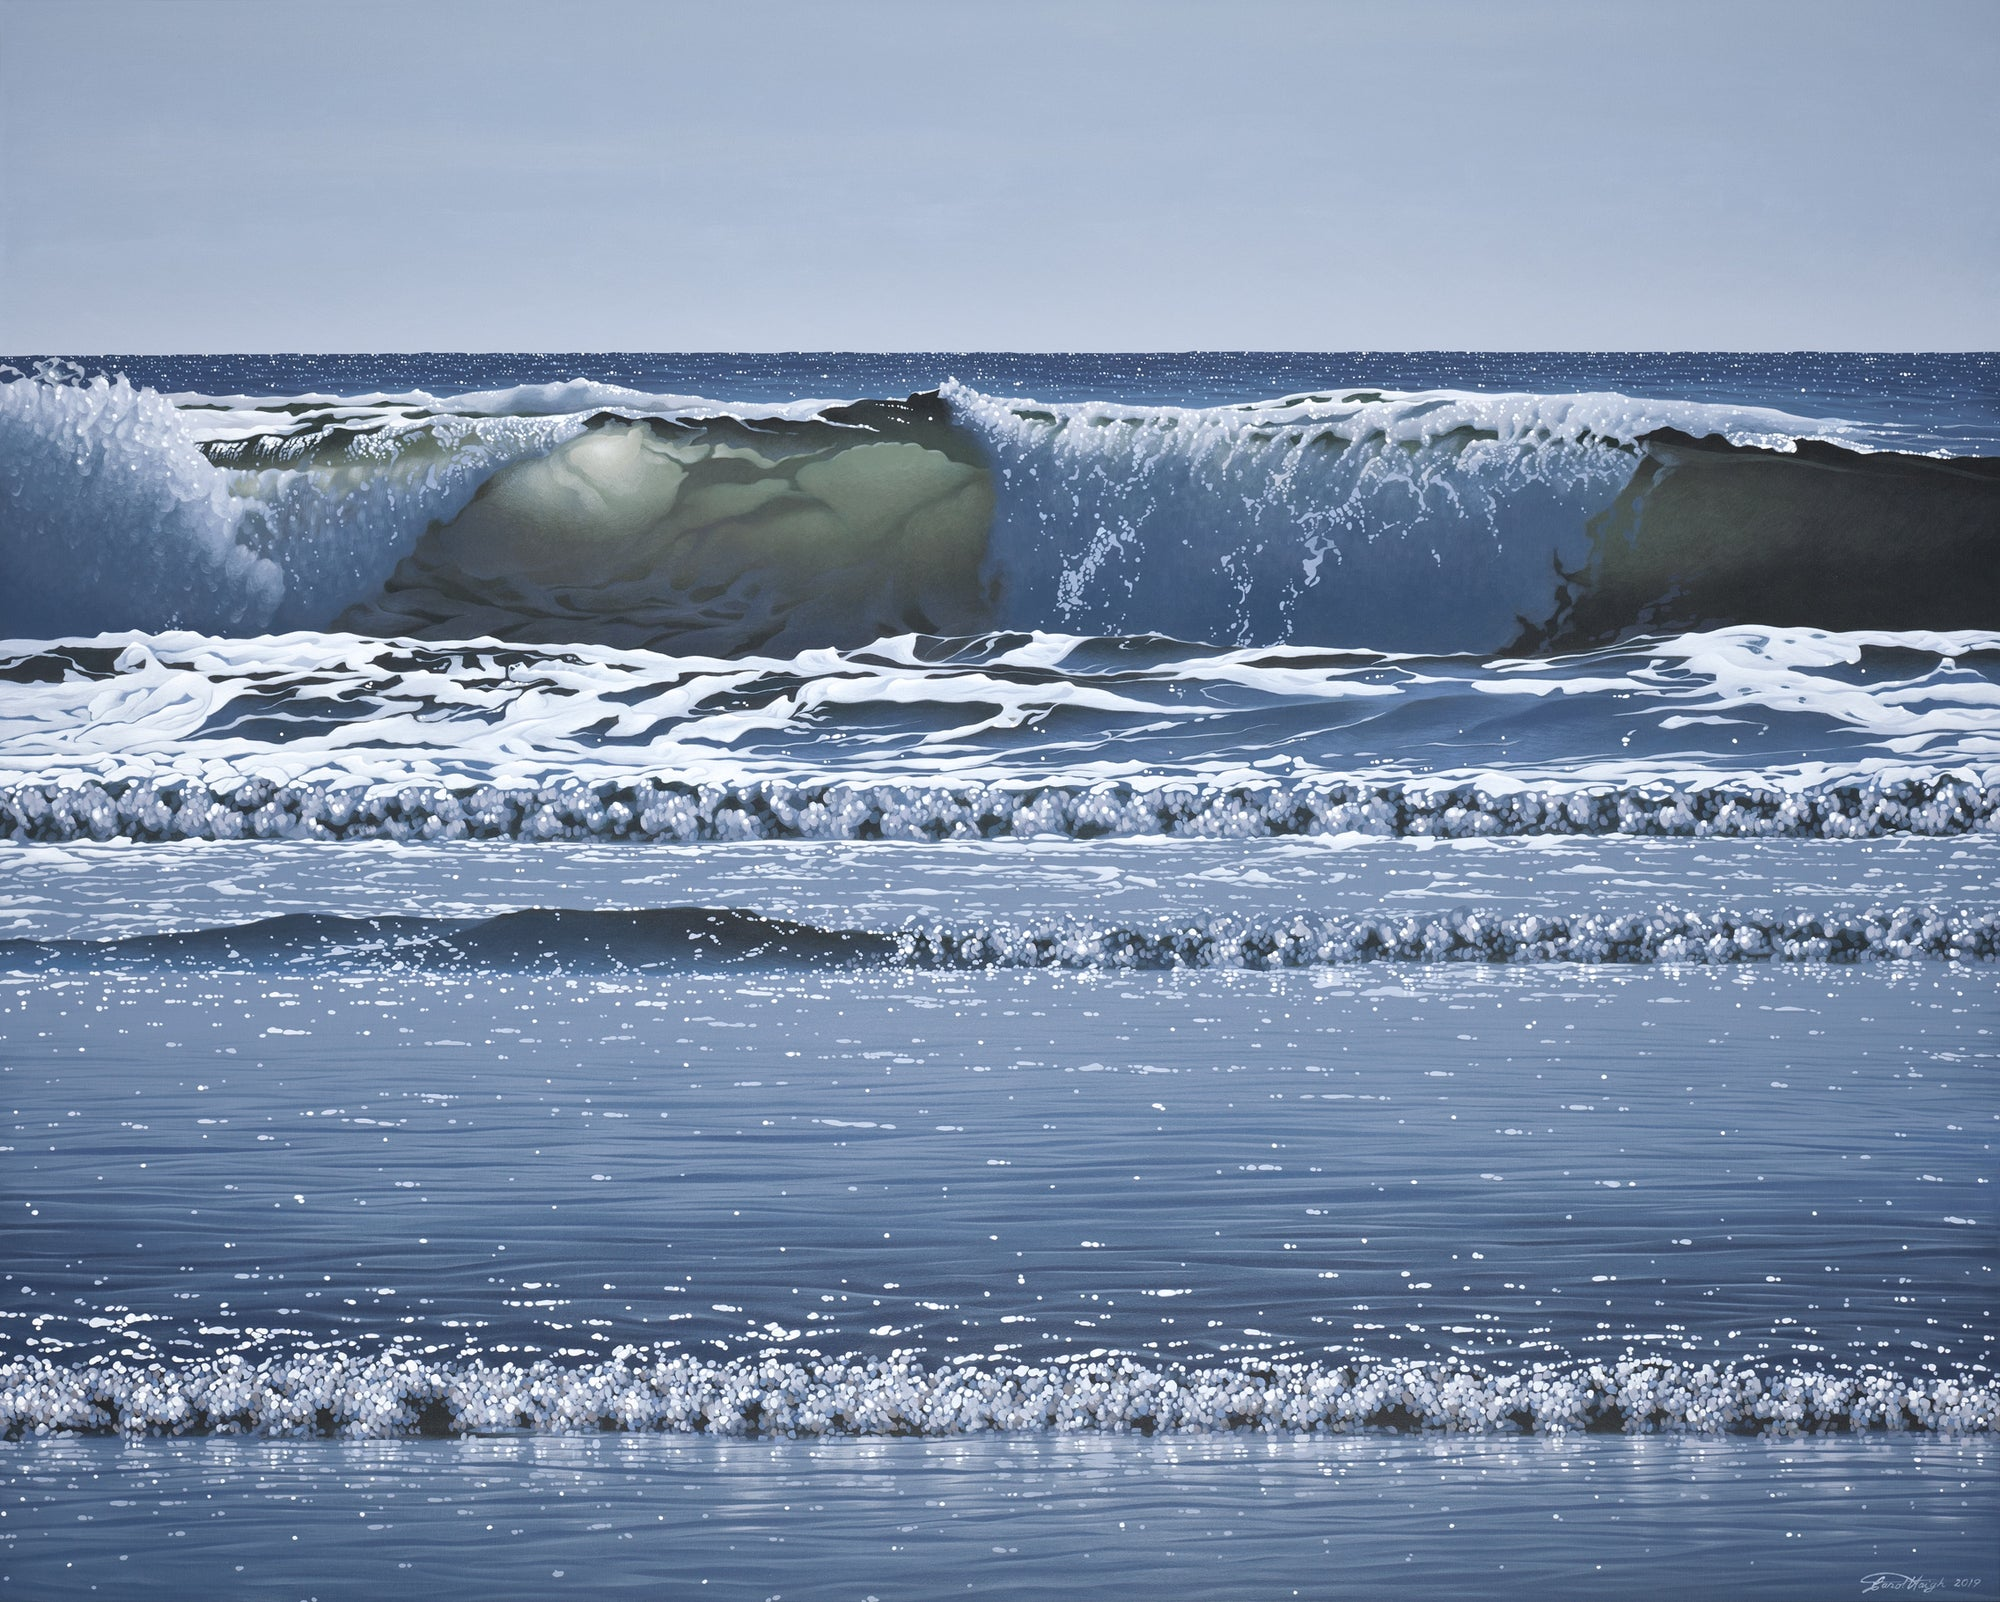 Acrylic high realism painting by renown Salt Spring Artist Carol Haigh depicting waves crashing on beach